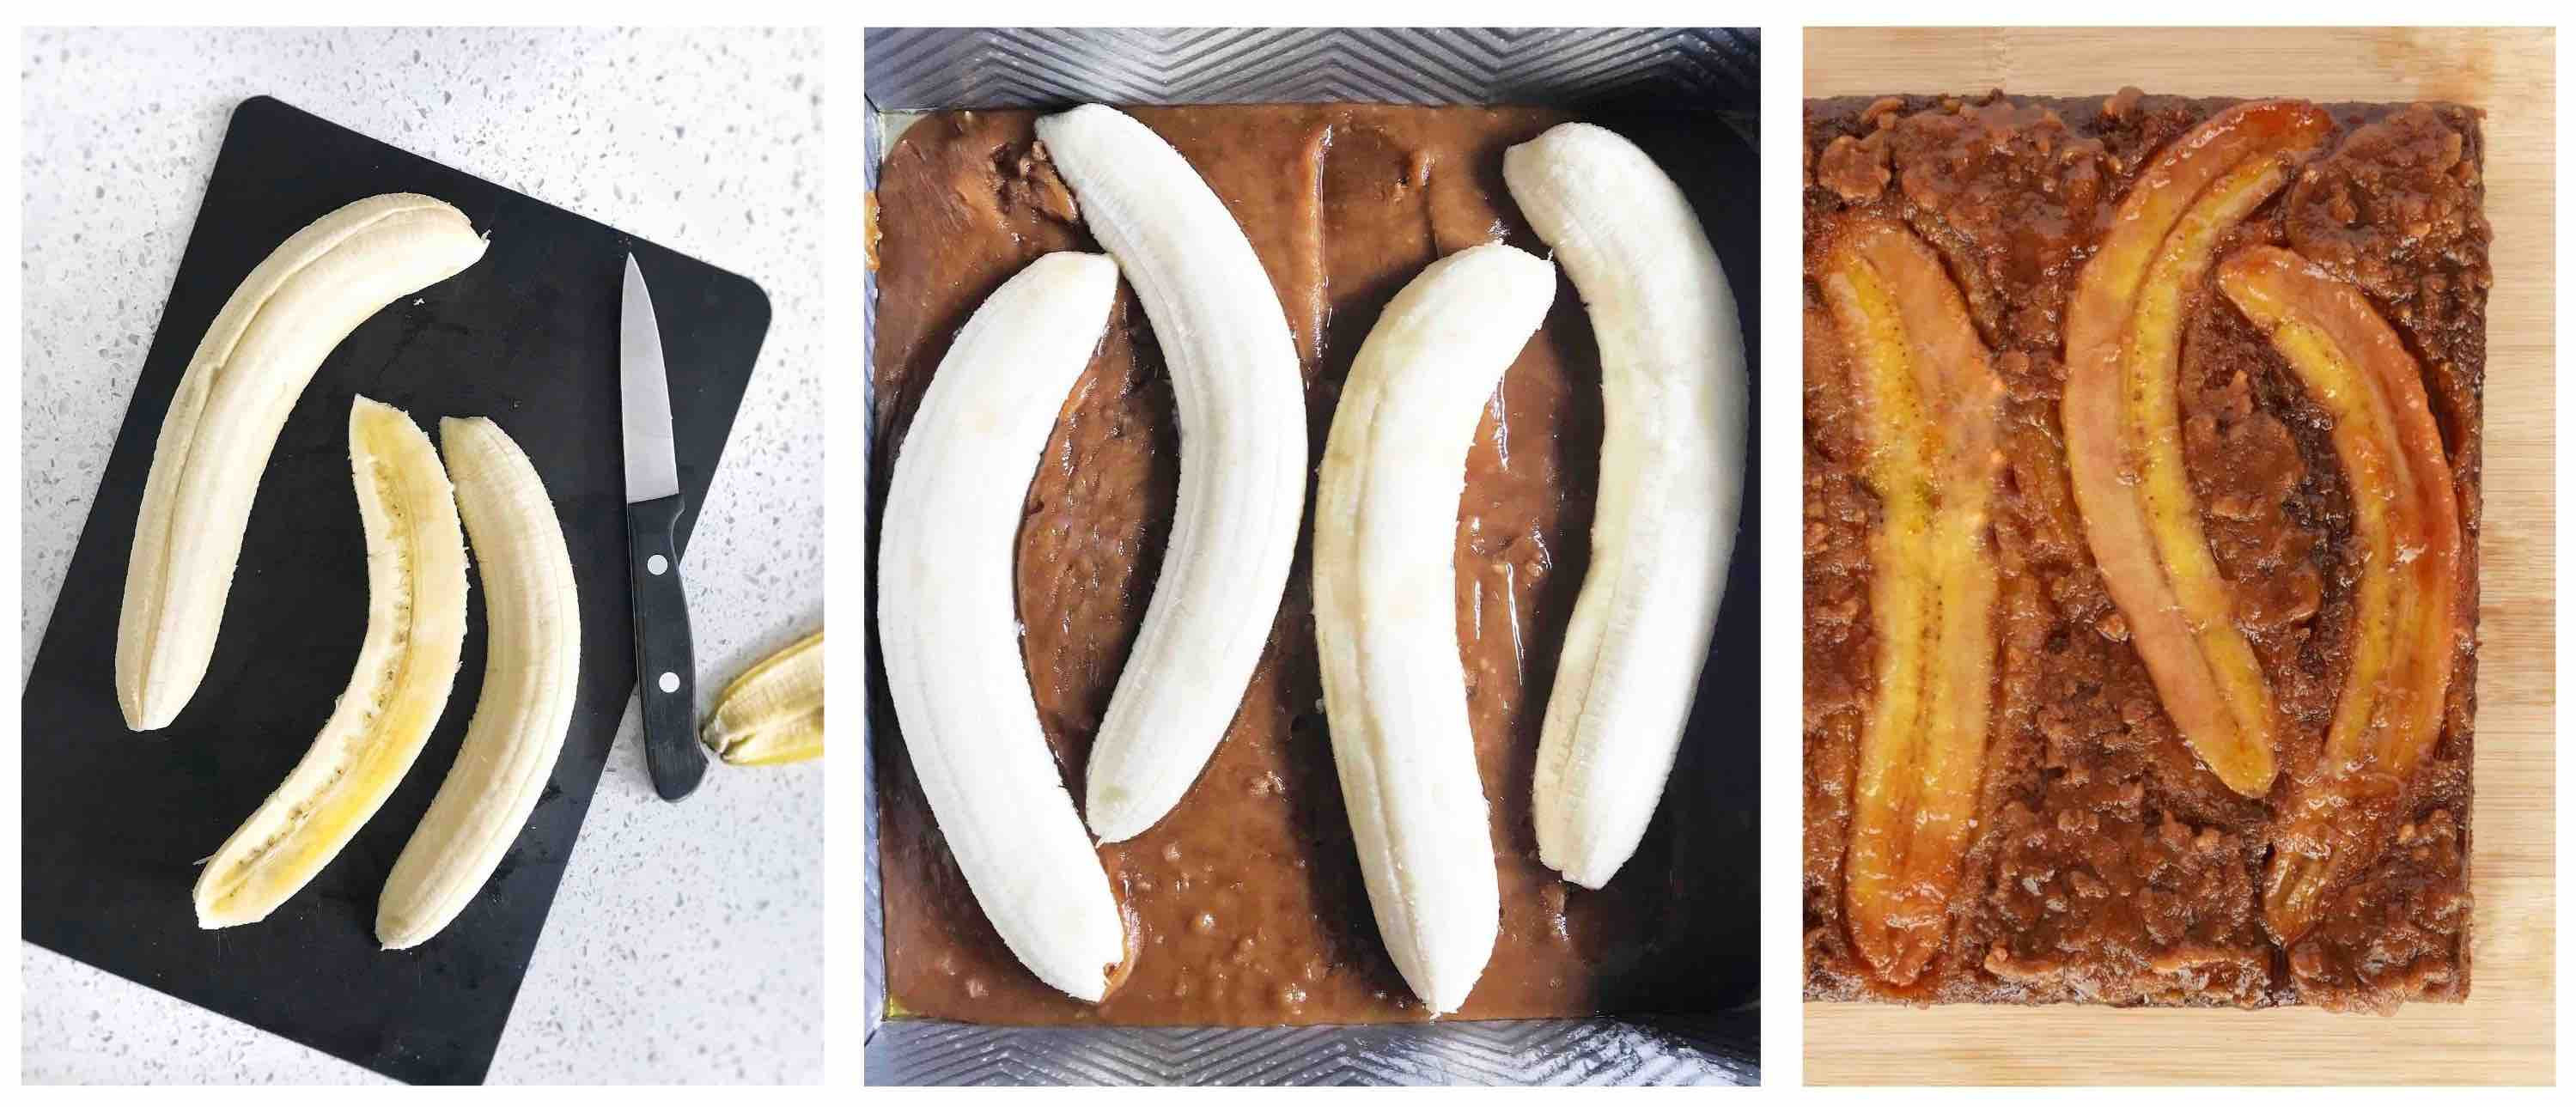 3 images, showing how to slice bananas long ways and arrange in caramel in bottom of pan